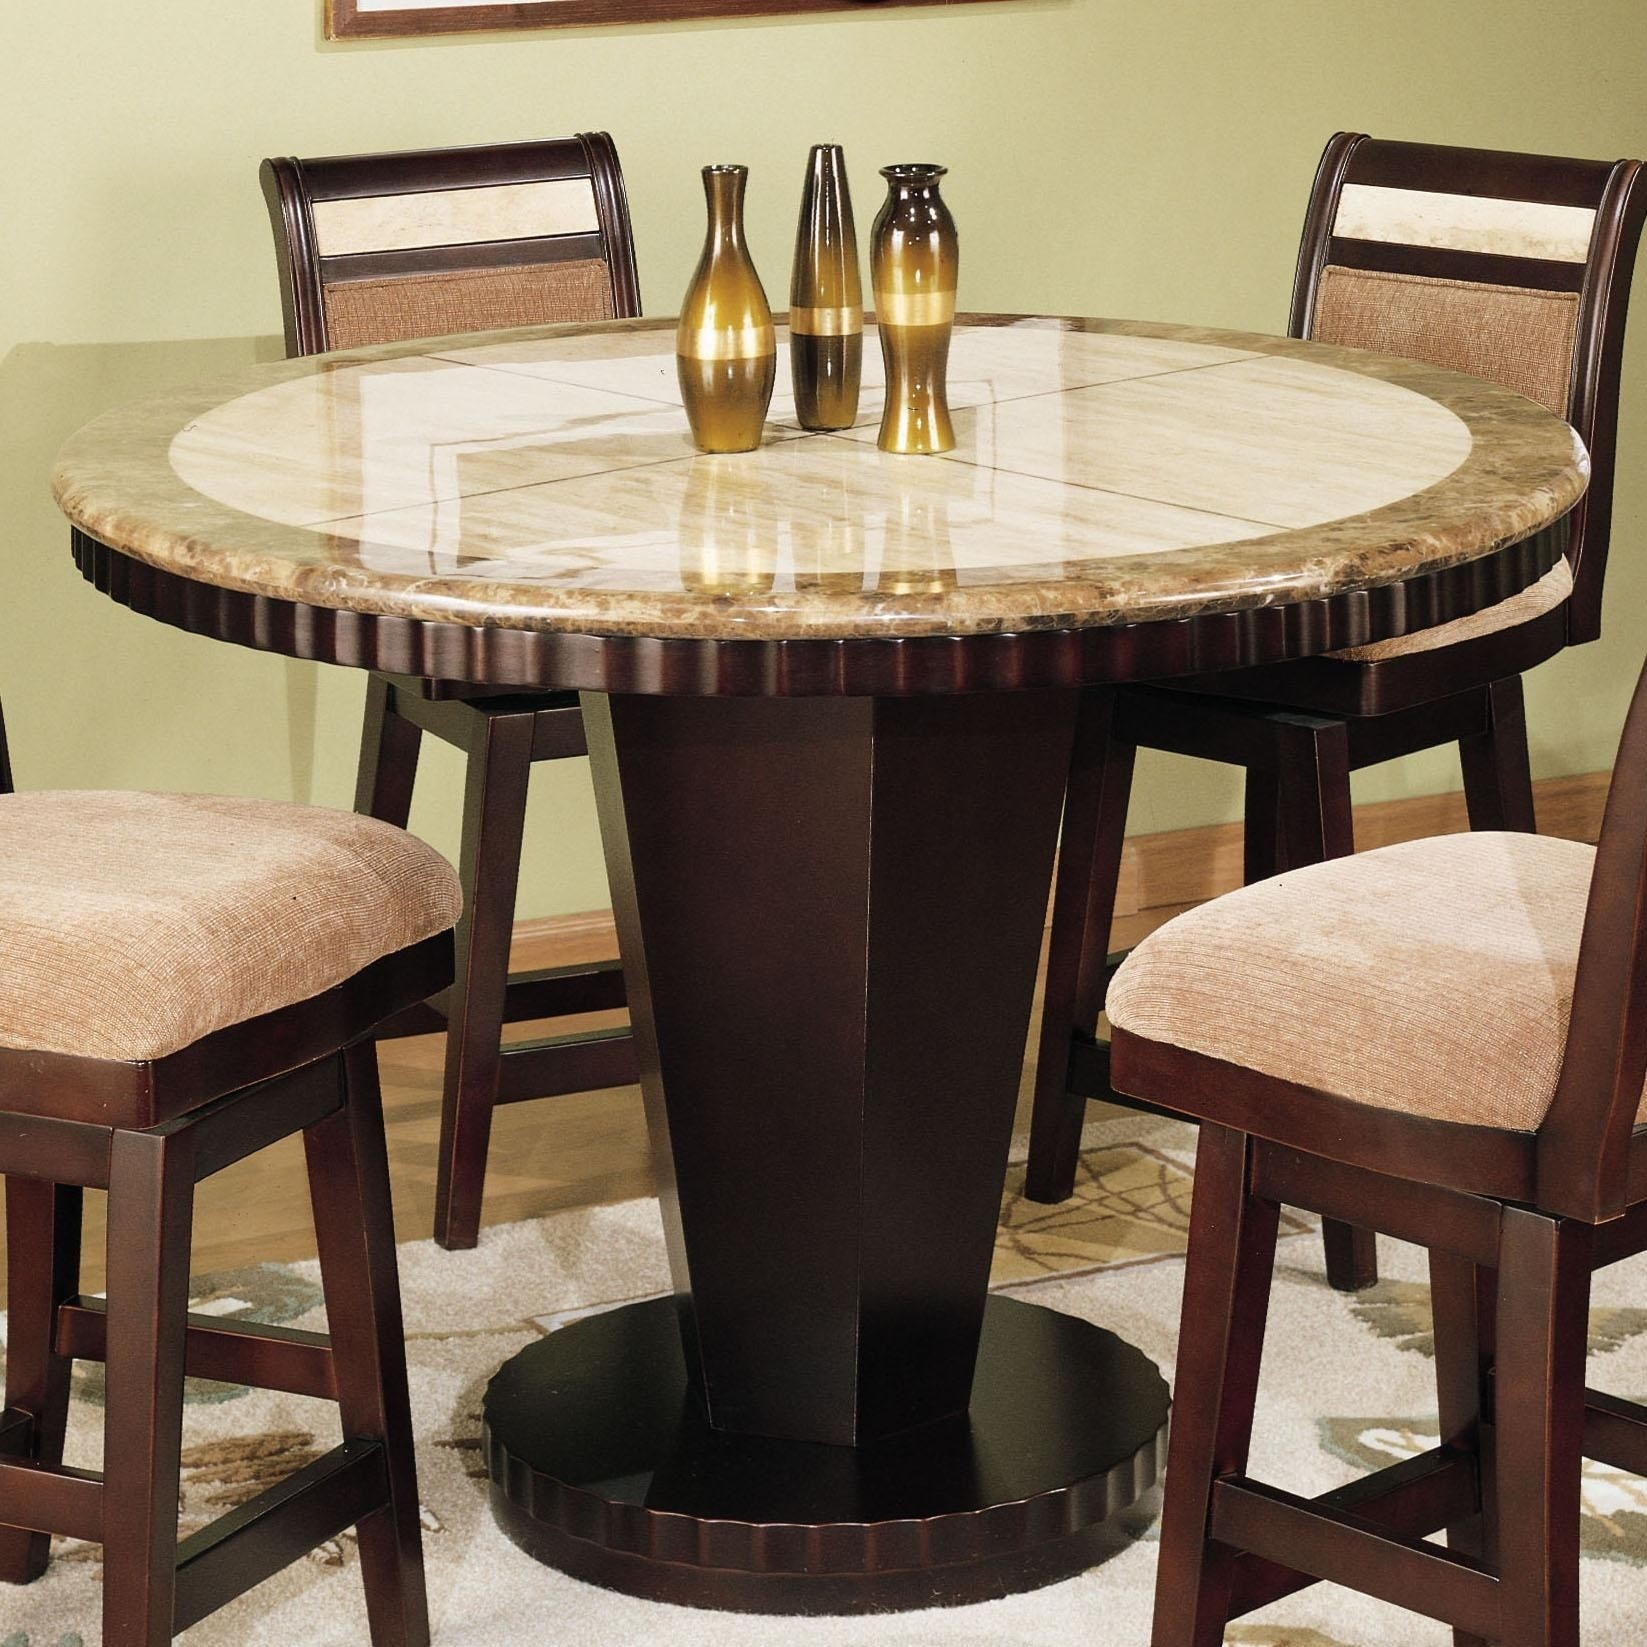 High top table for two & High Top Pub Table Sets - Foter